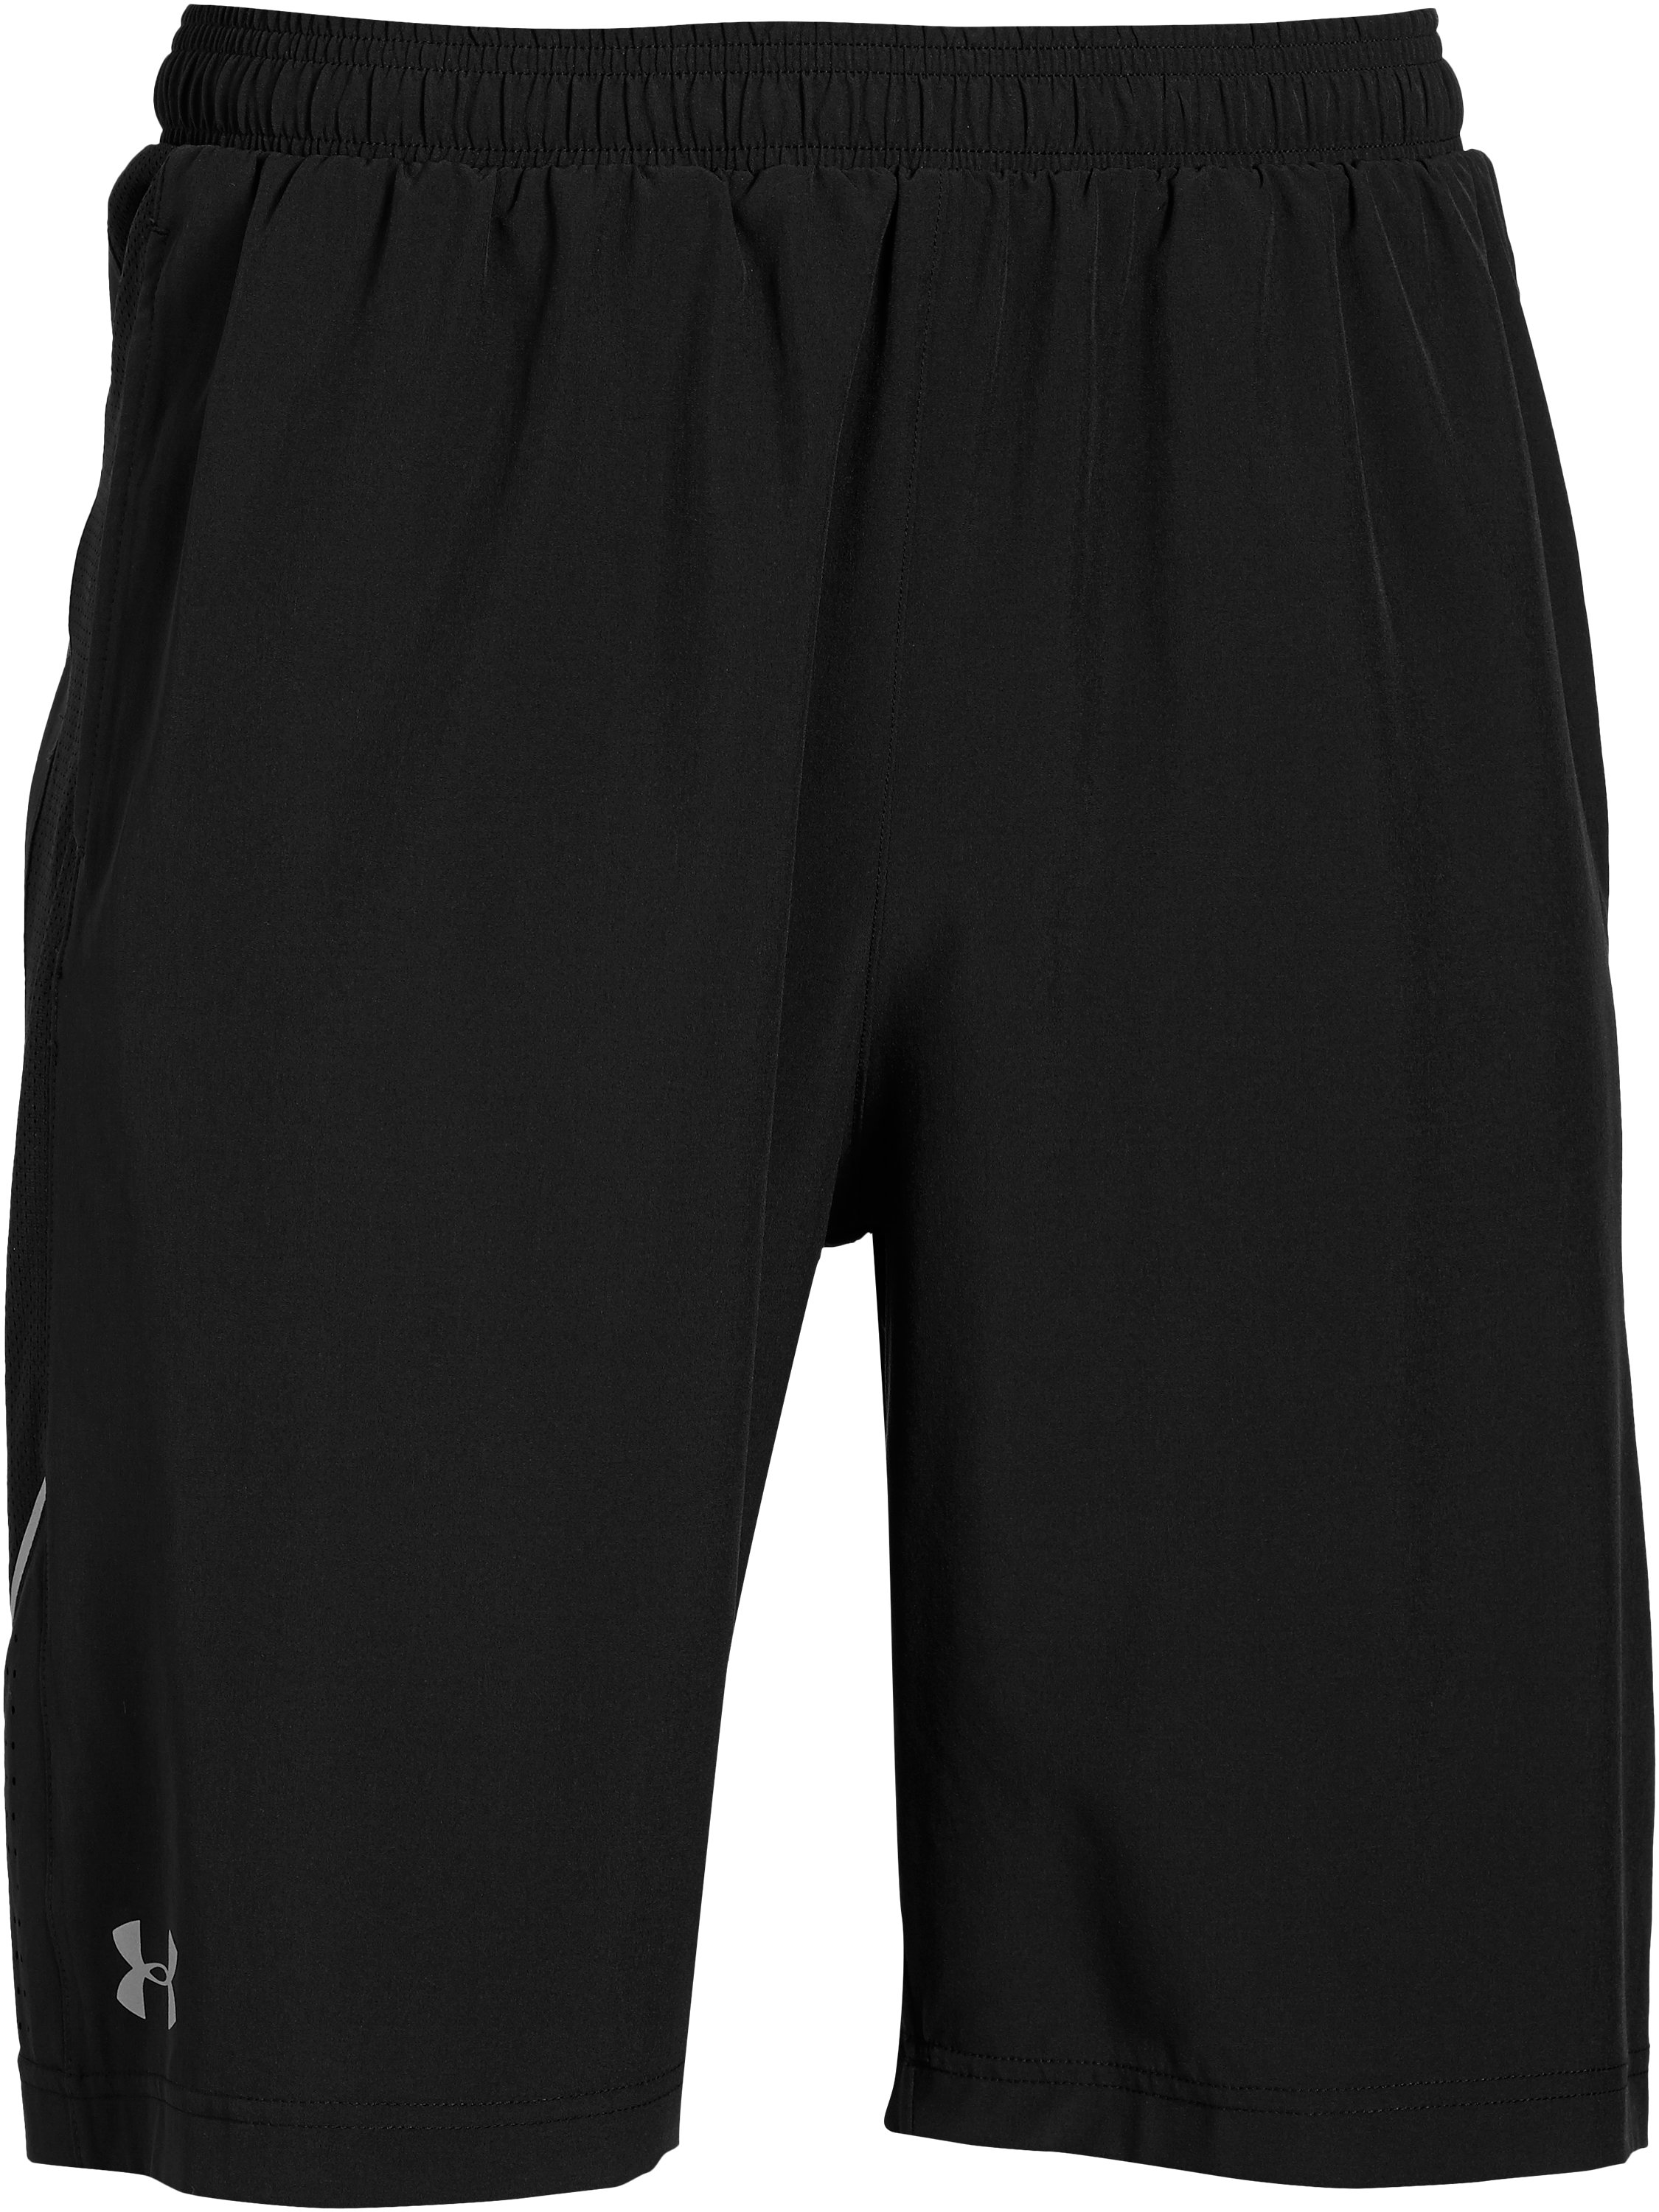 "Men's UA Launch Stretch Woven 9"" Run Shorts, Black ,"